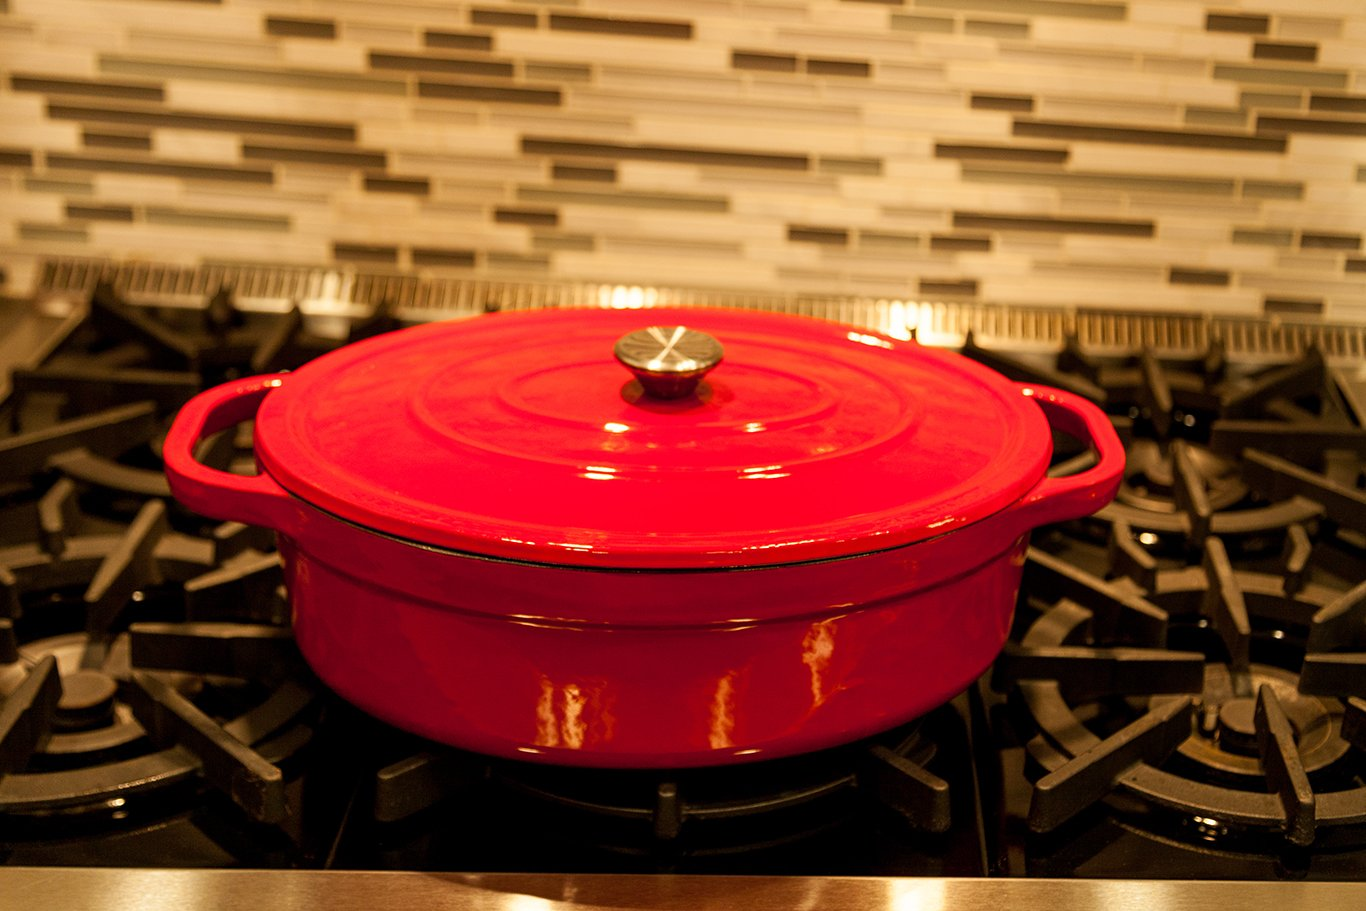 Useful UH-CI35 7 Quart Cast Iron Enamel Oval Covered Dutch Oven Casserole With Lid by Useful. (Image #3)